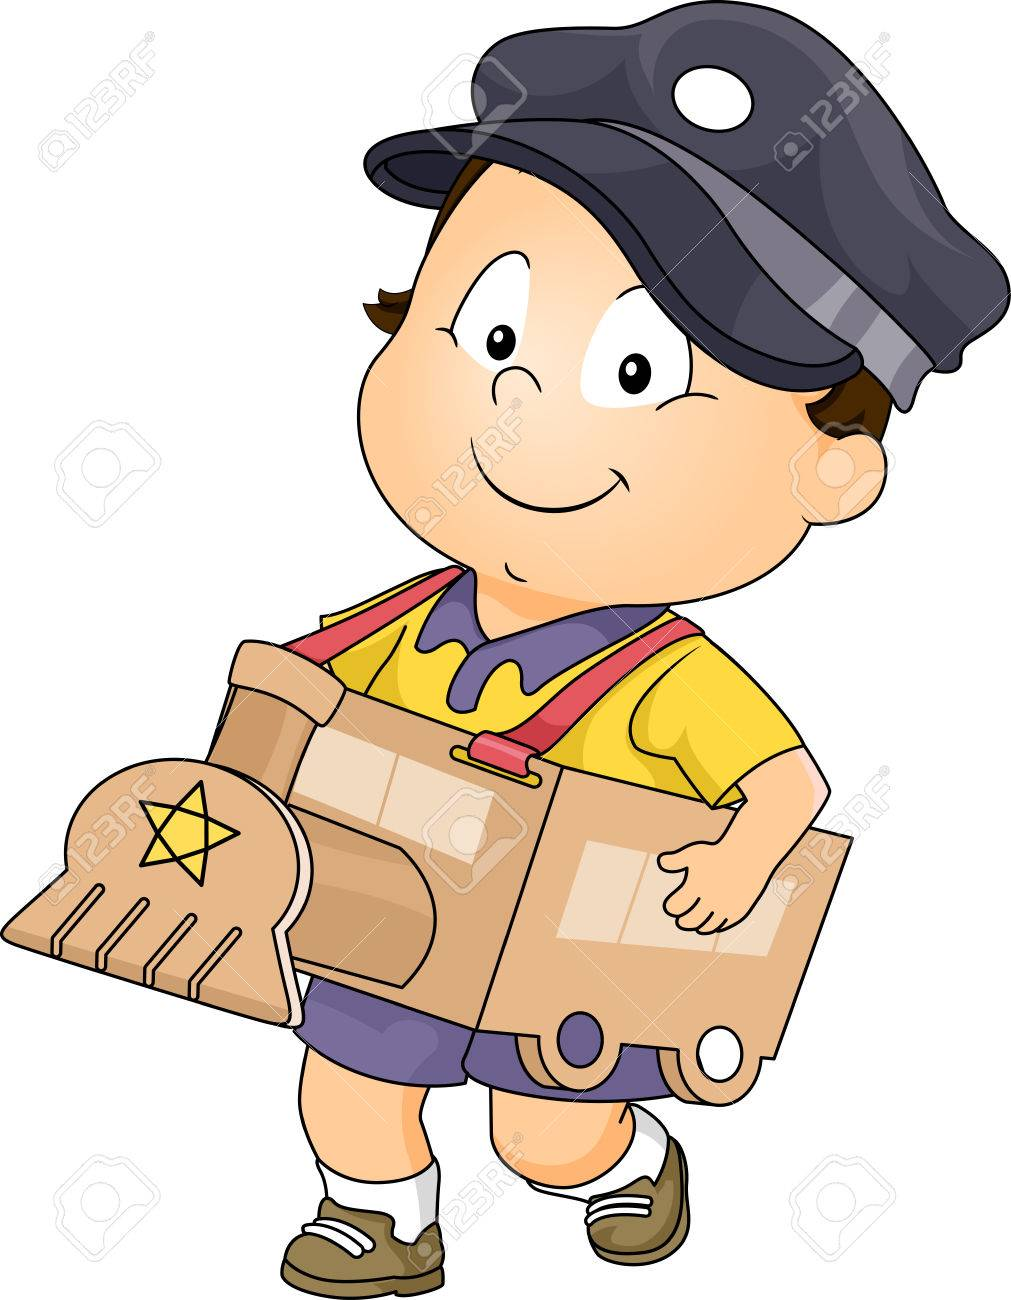 Illustration Featuring A Baby Boy Wearing Makeshift Train Costume Stock Vector